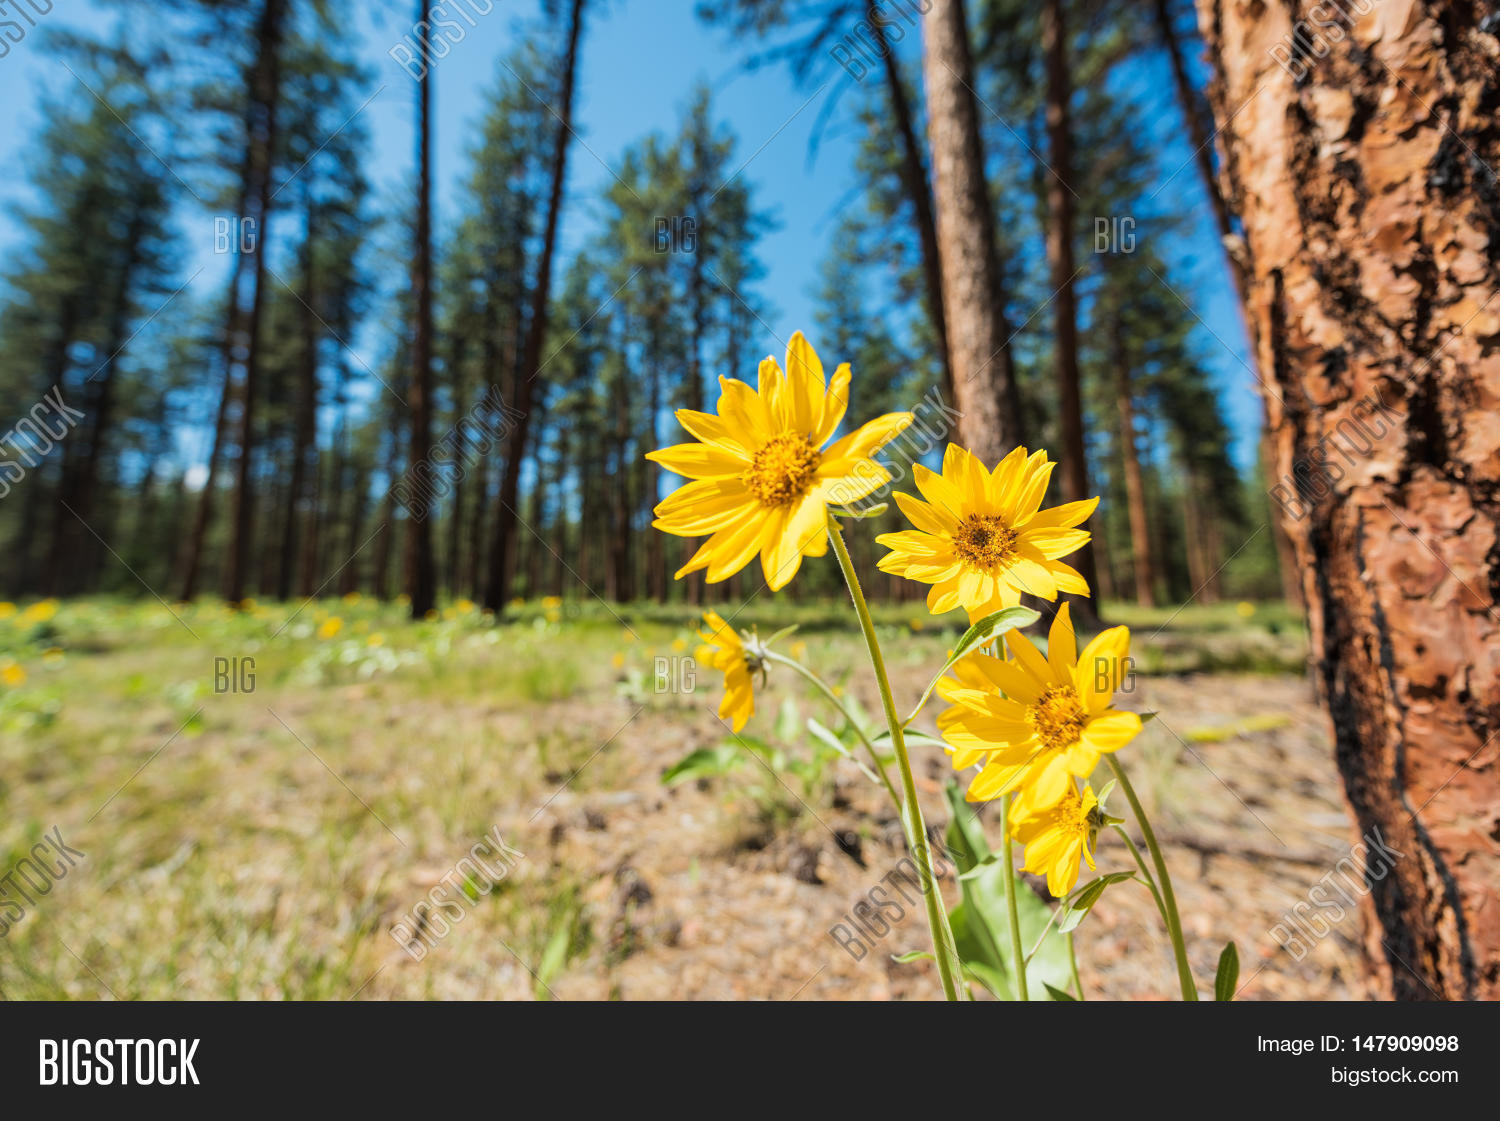 Closeup Yellow Image Photo Free Trial Bigstock